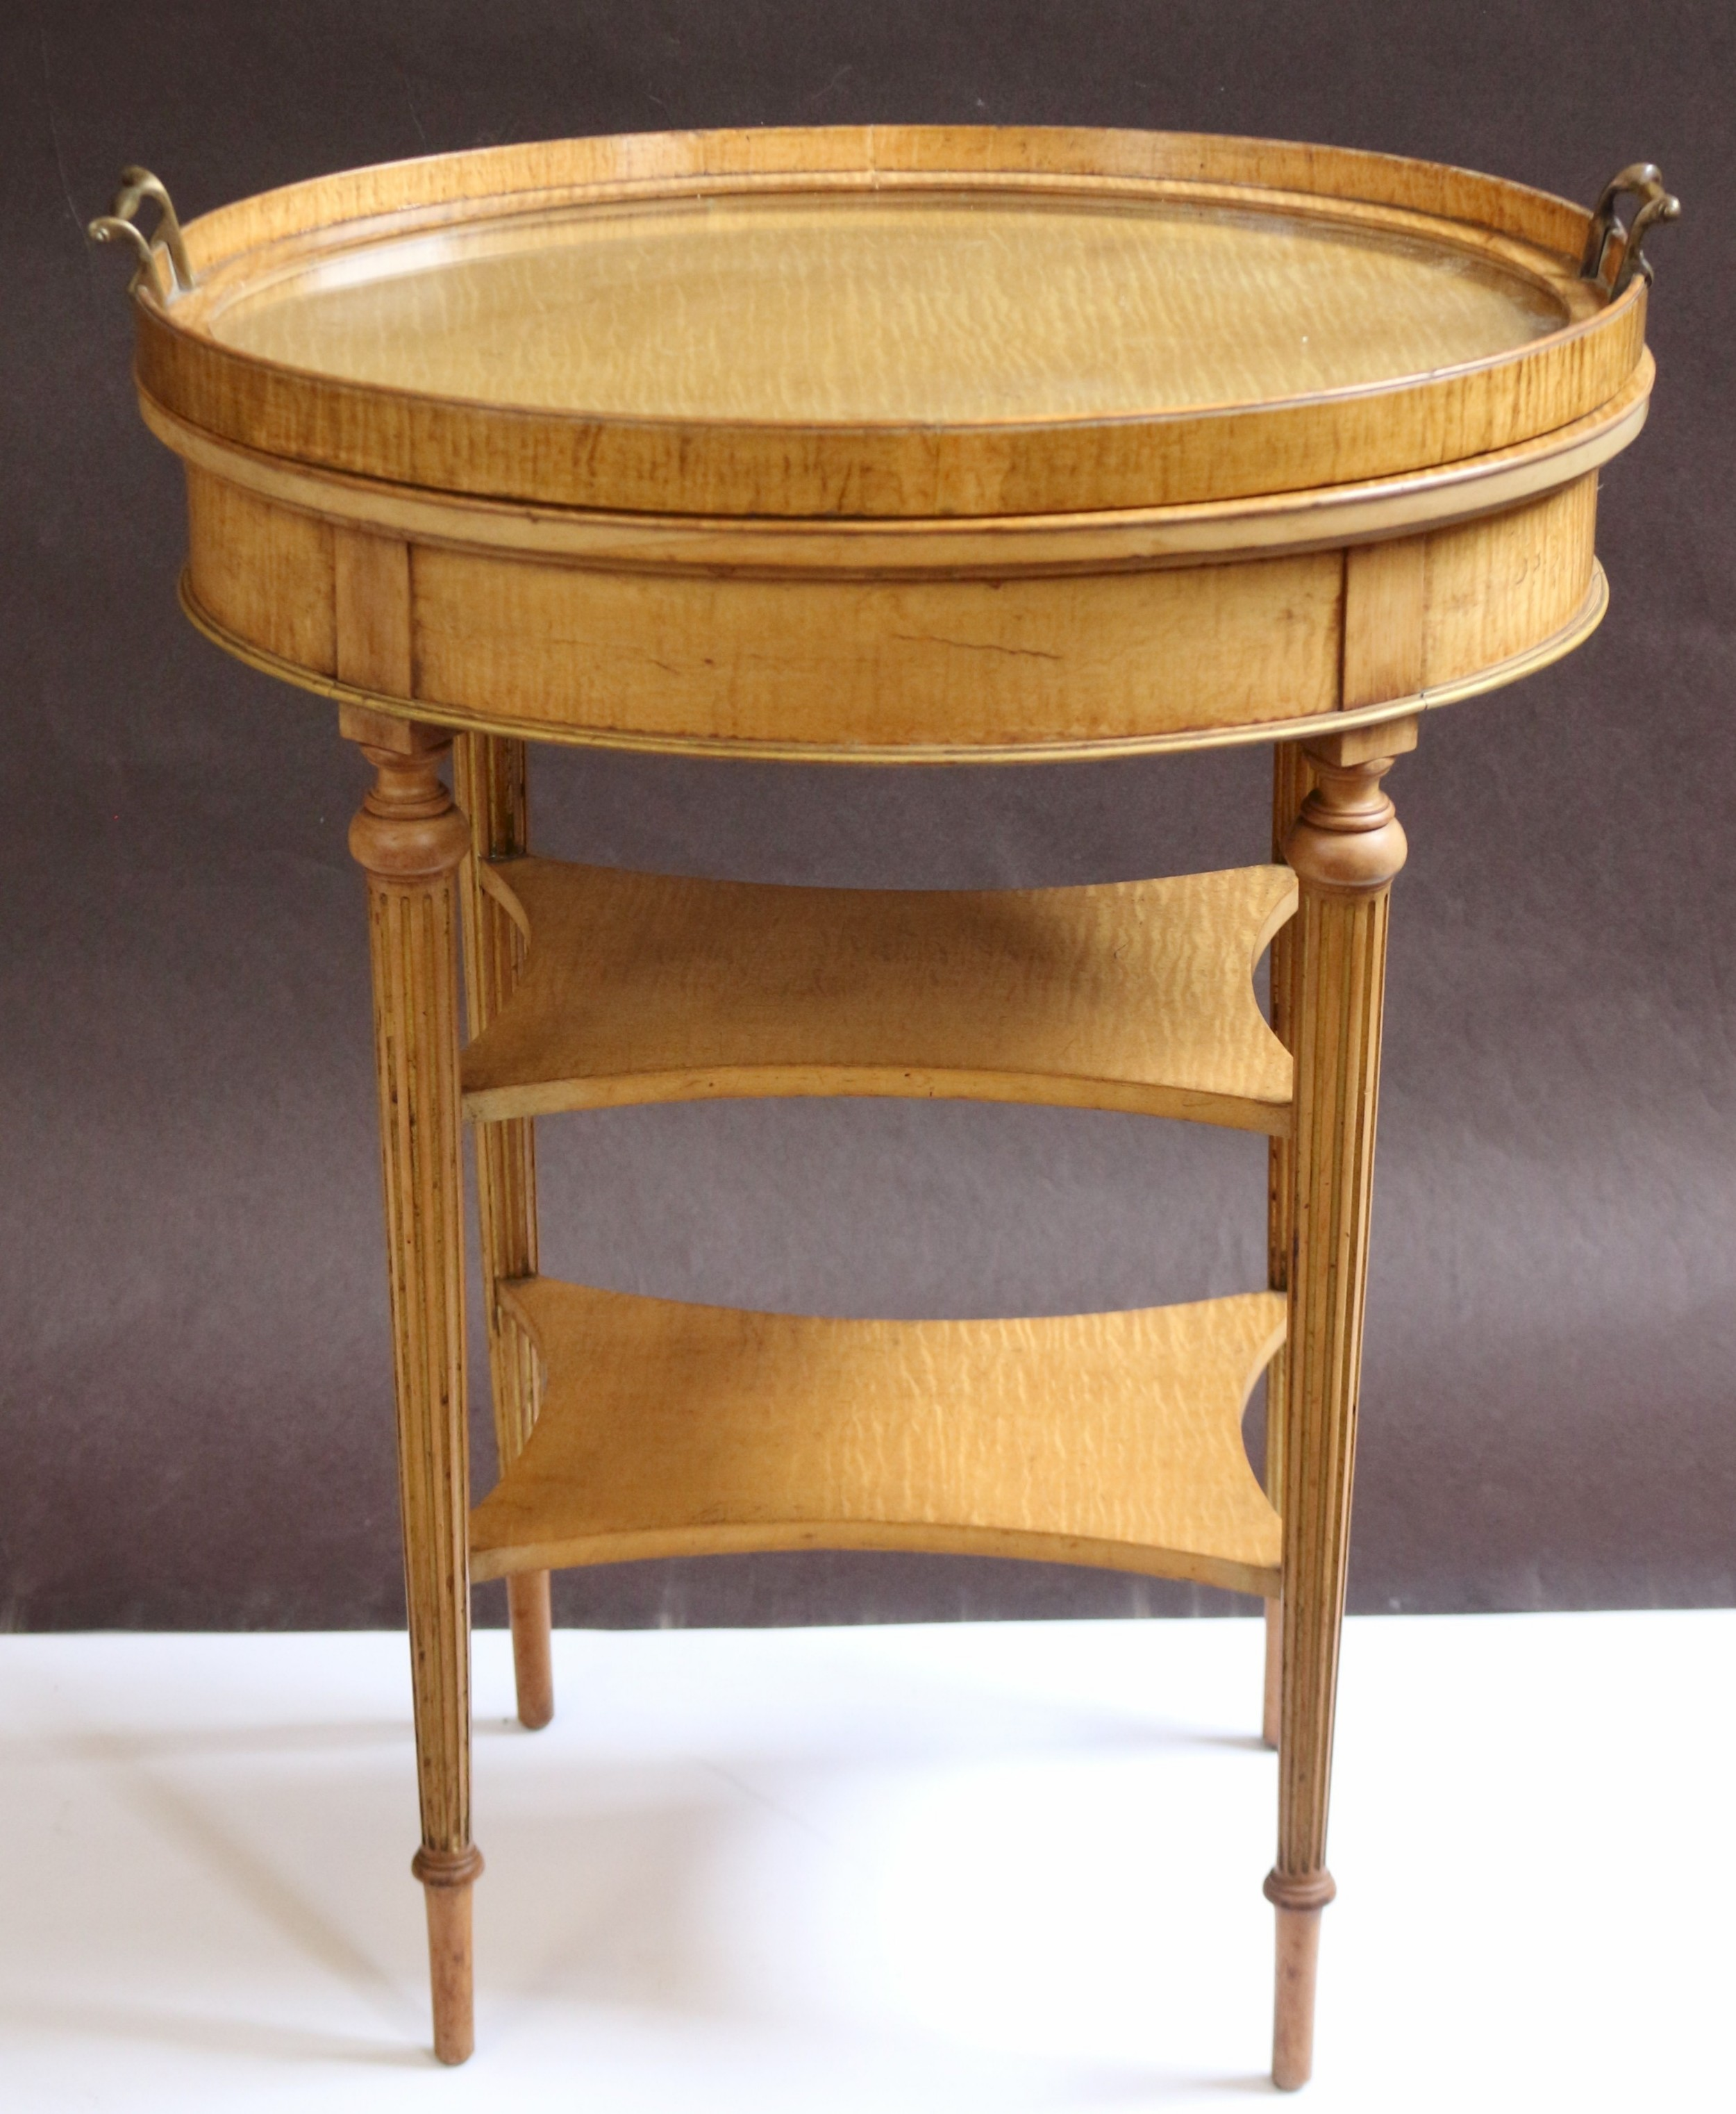 edwardian feathered maple oval 3 tier tray top tea table